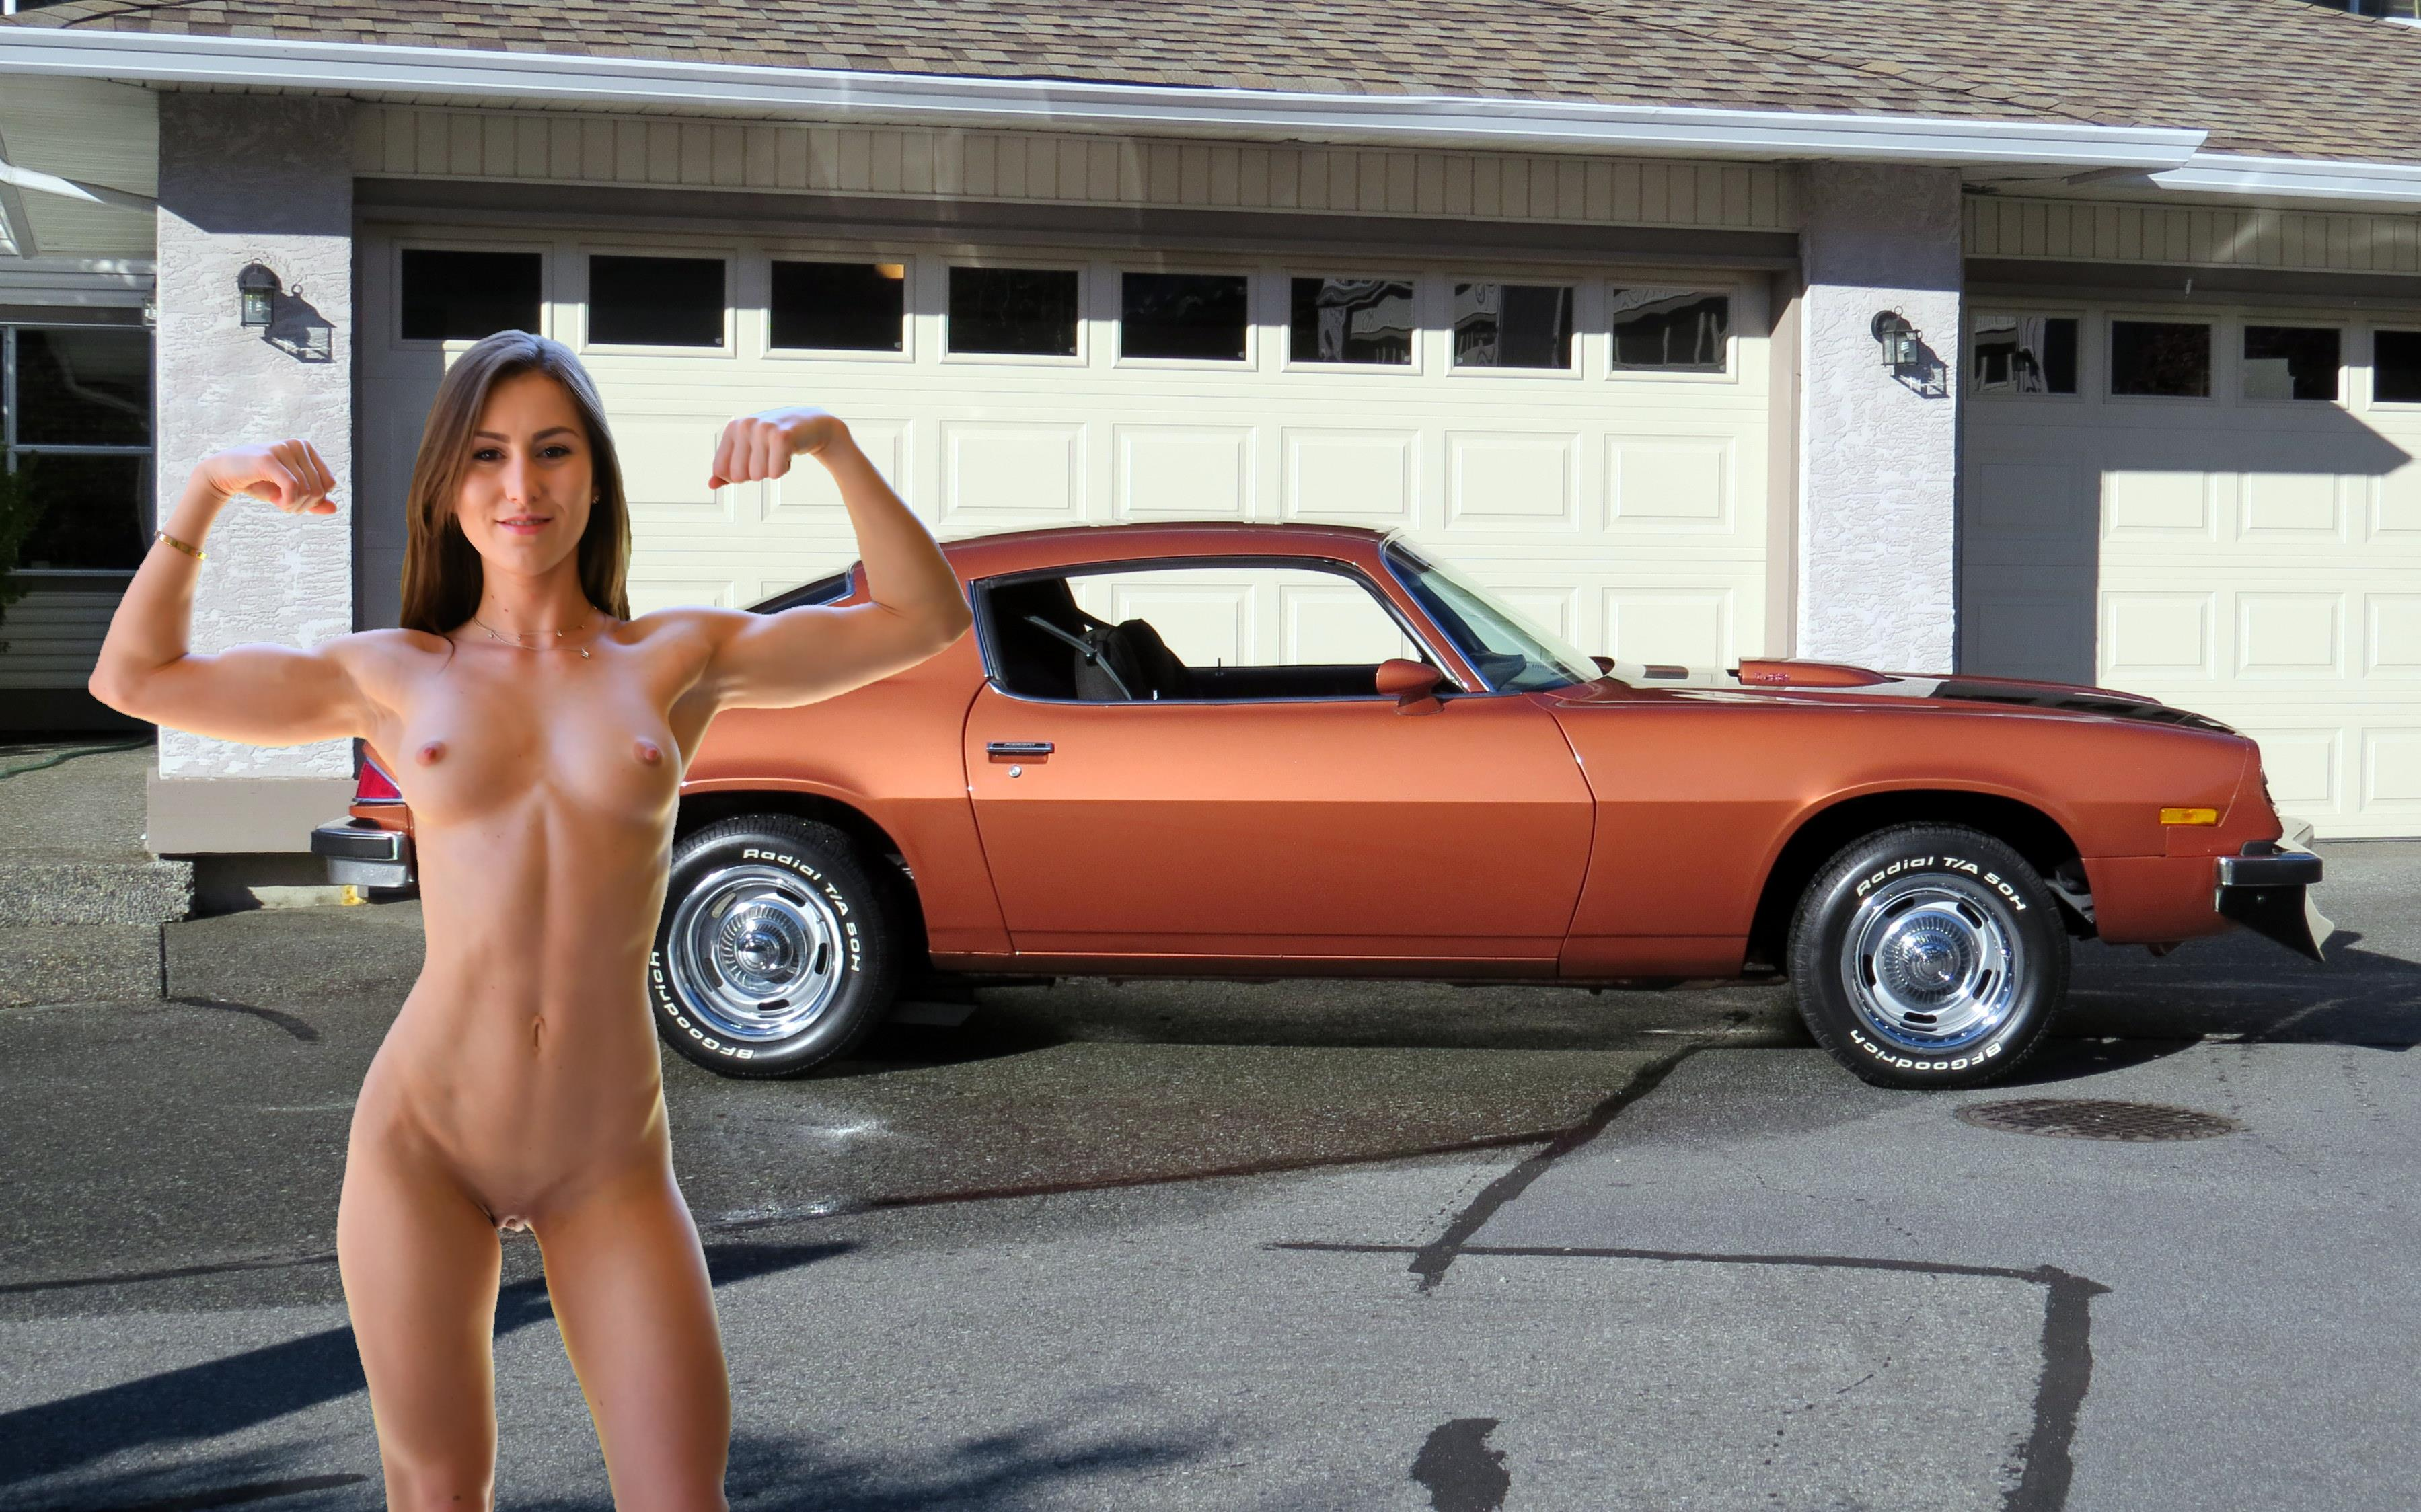 Woman Naked On Muscle Car